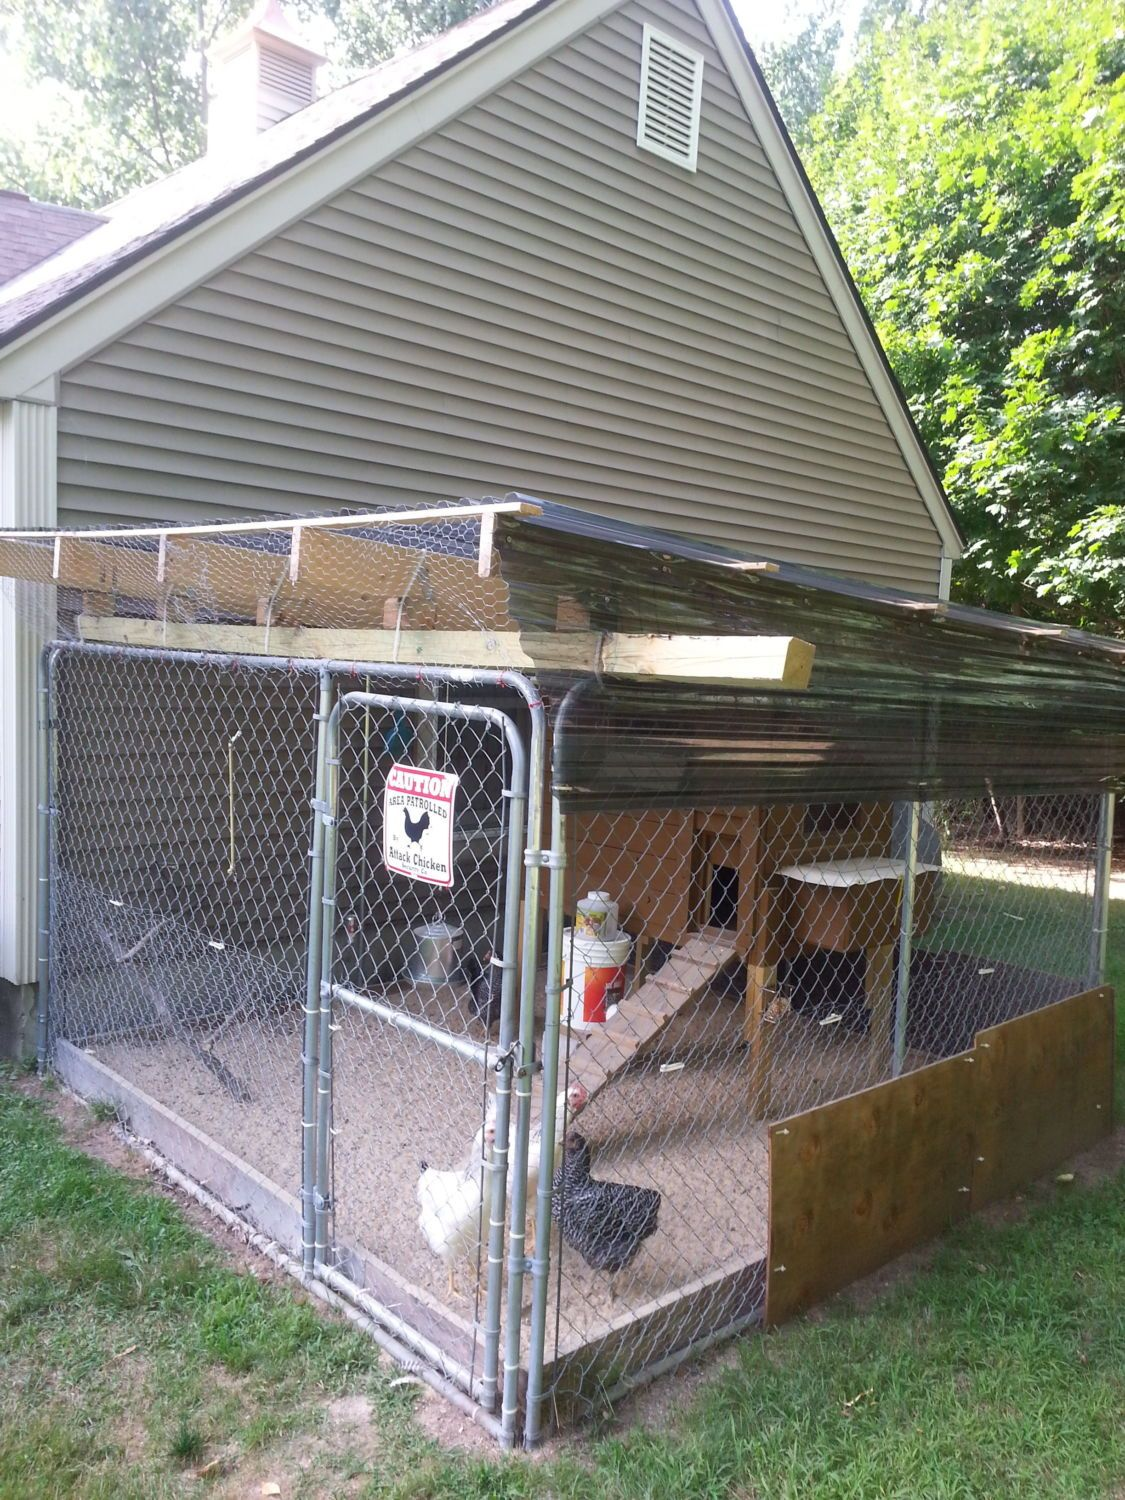 Exceptional [ IMG] 10x10 Dog Kennel With Suntuff 12ft Corrugated Roofing.